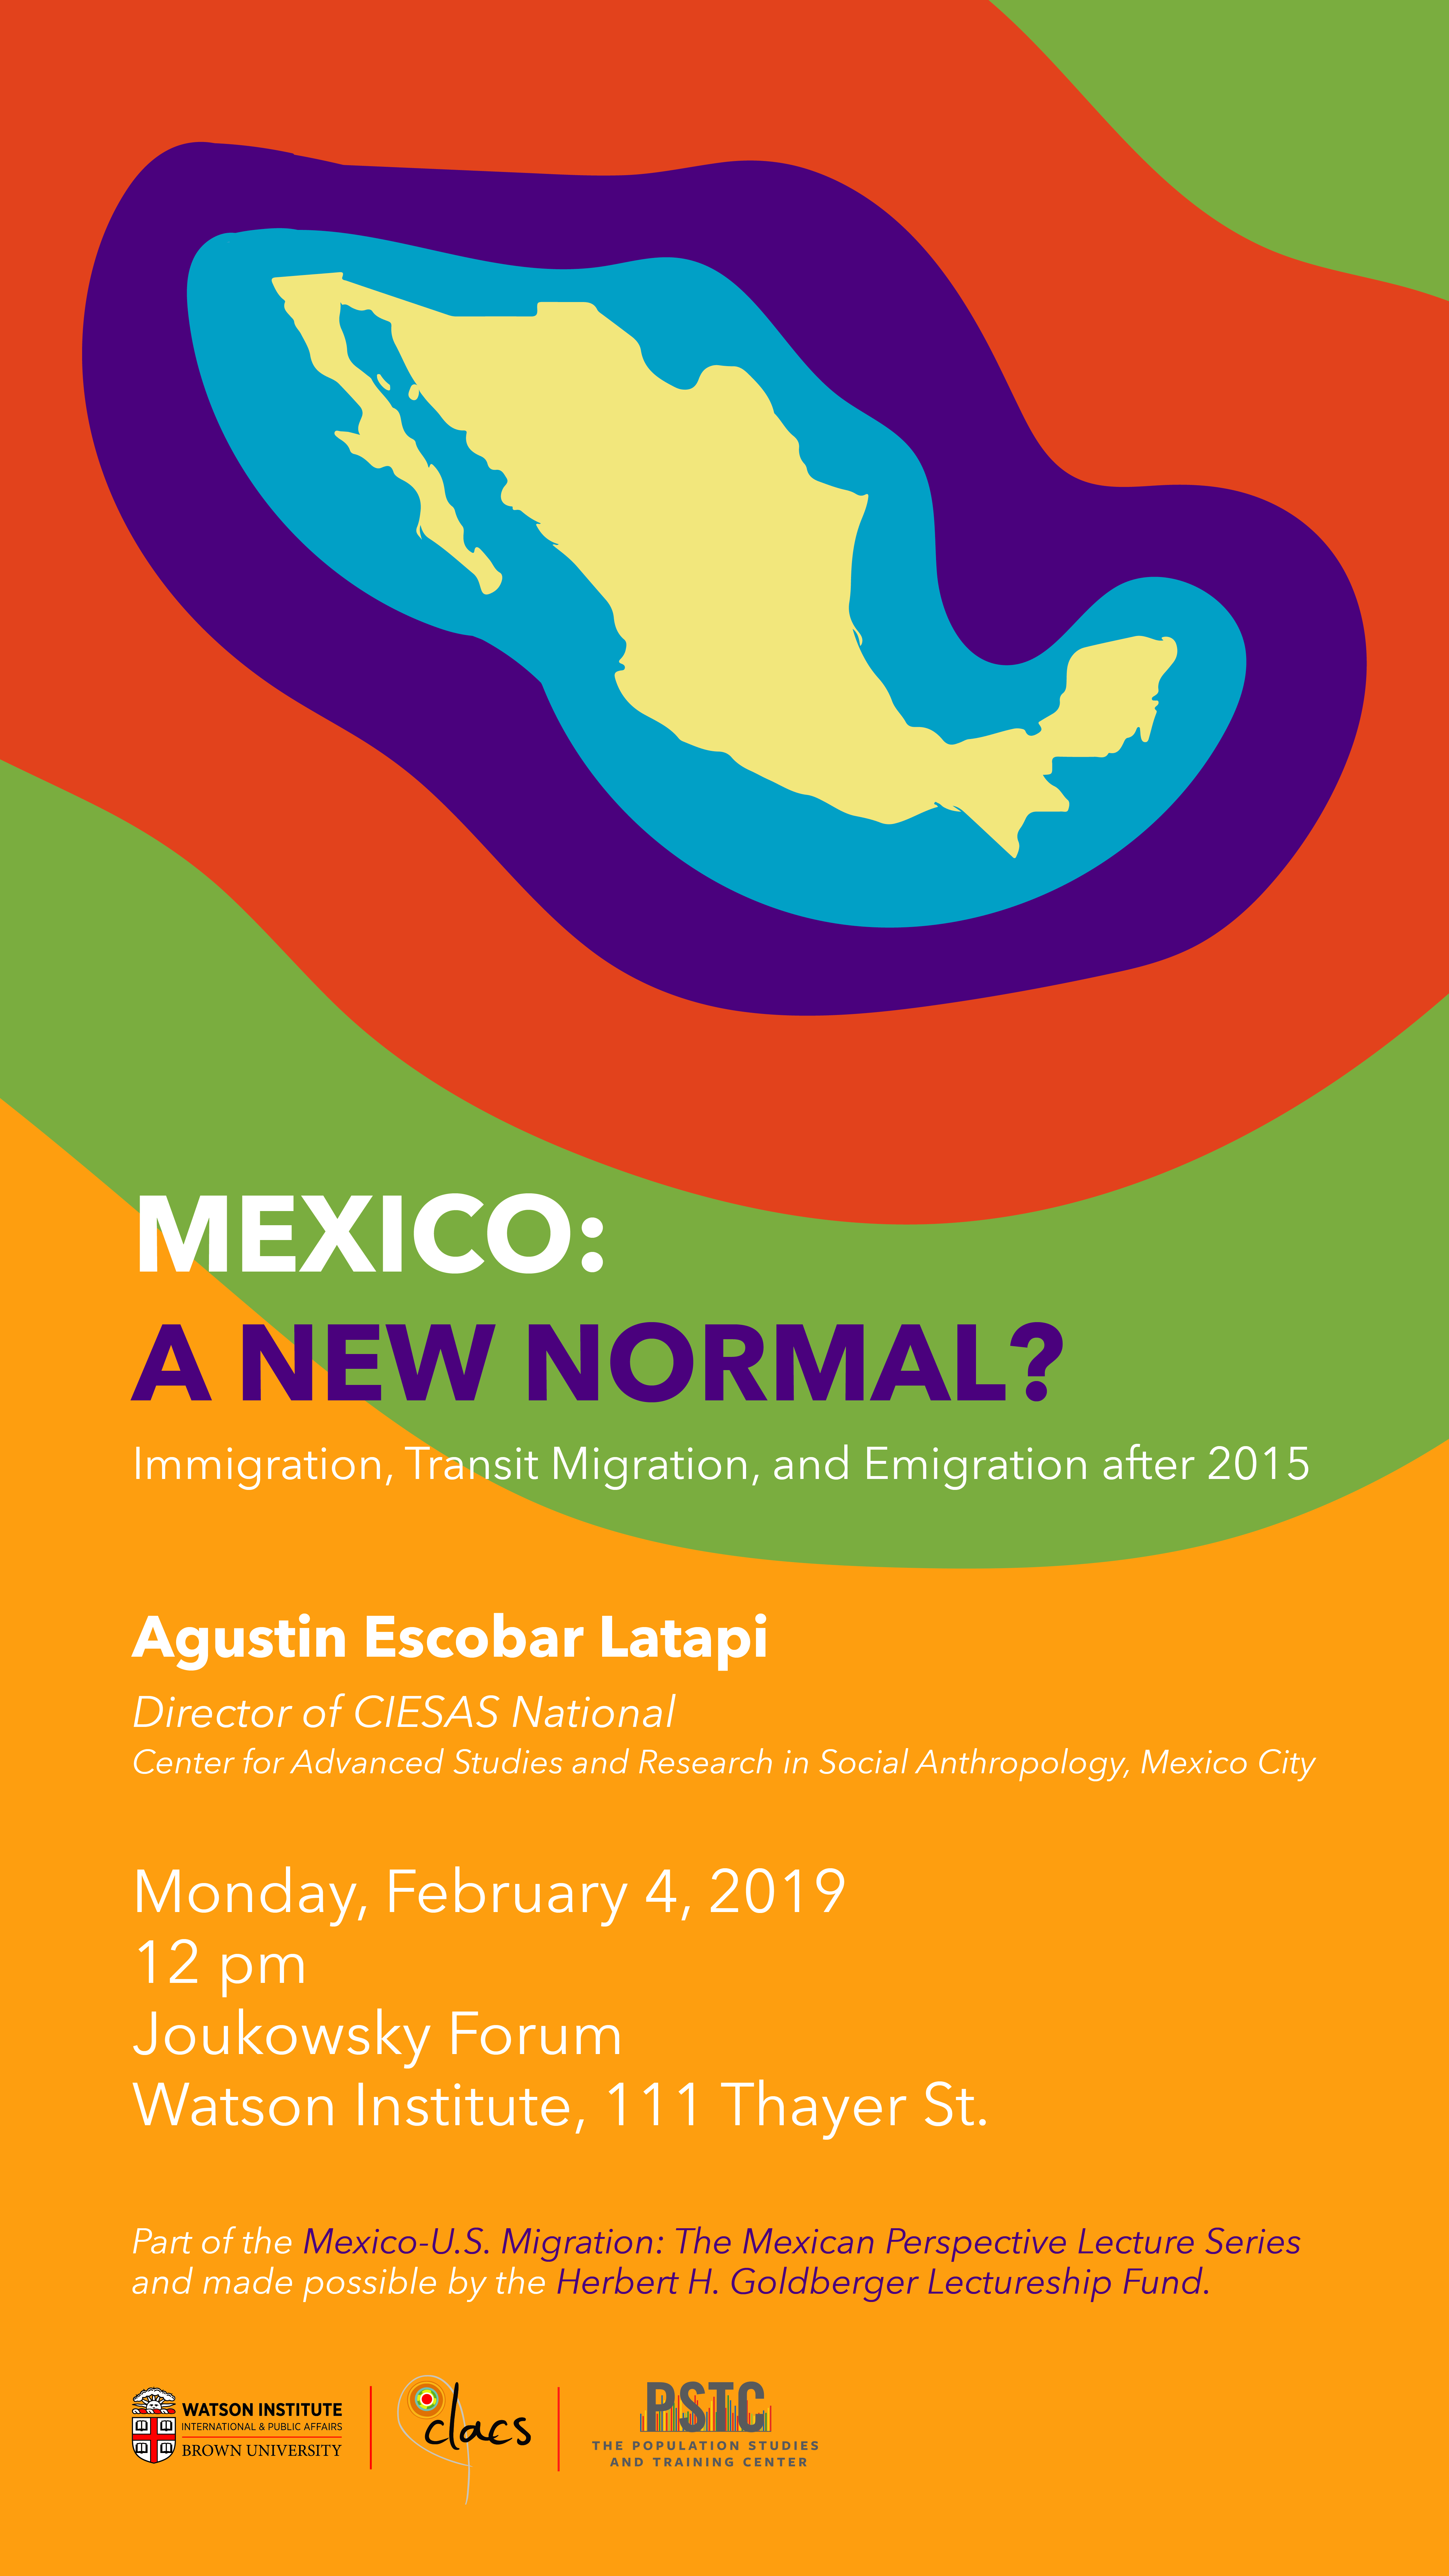 Mexico: A New Normal? Immigration, Transit Migration, and Emigration